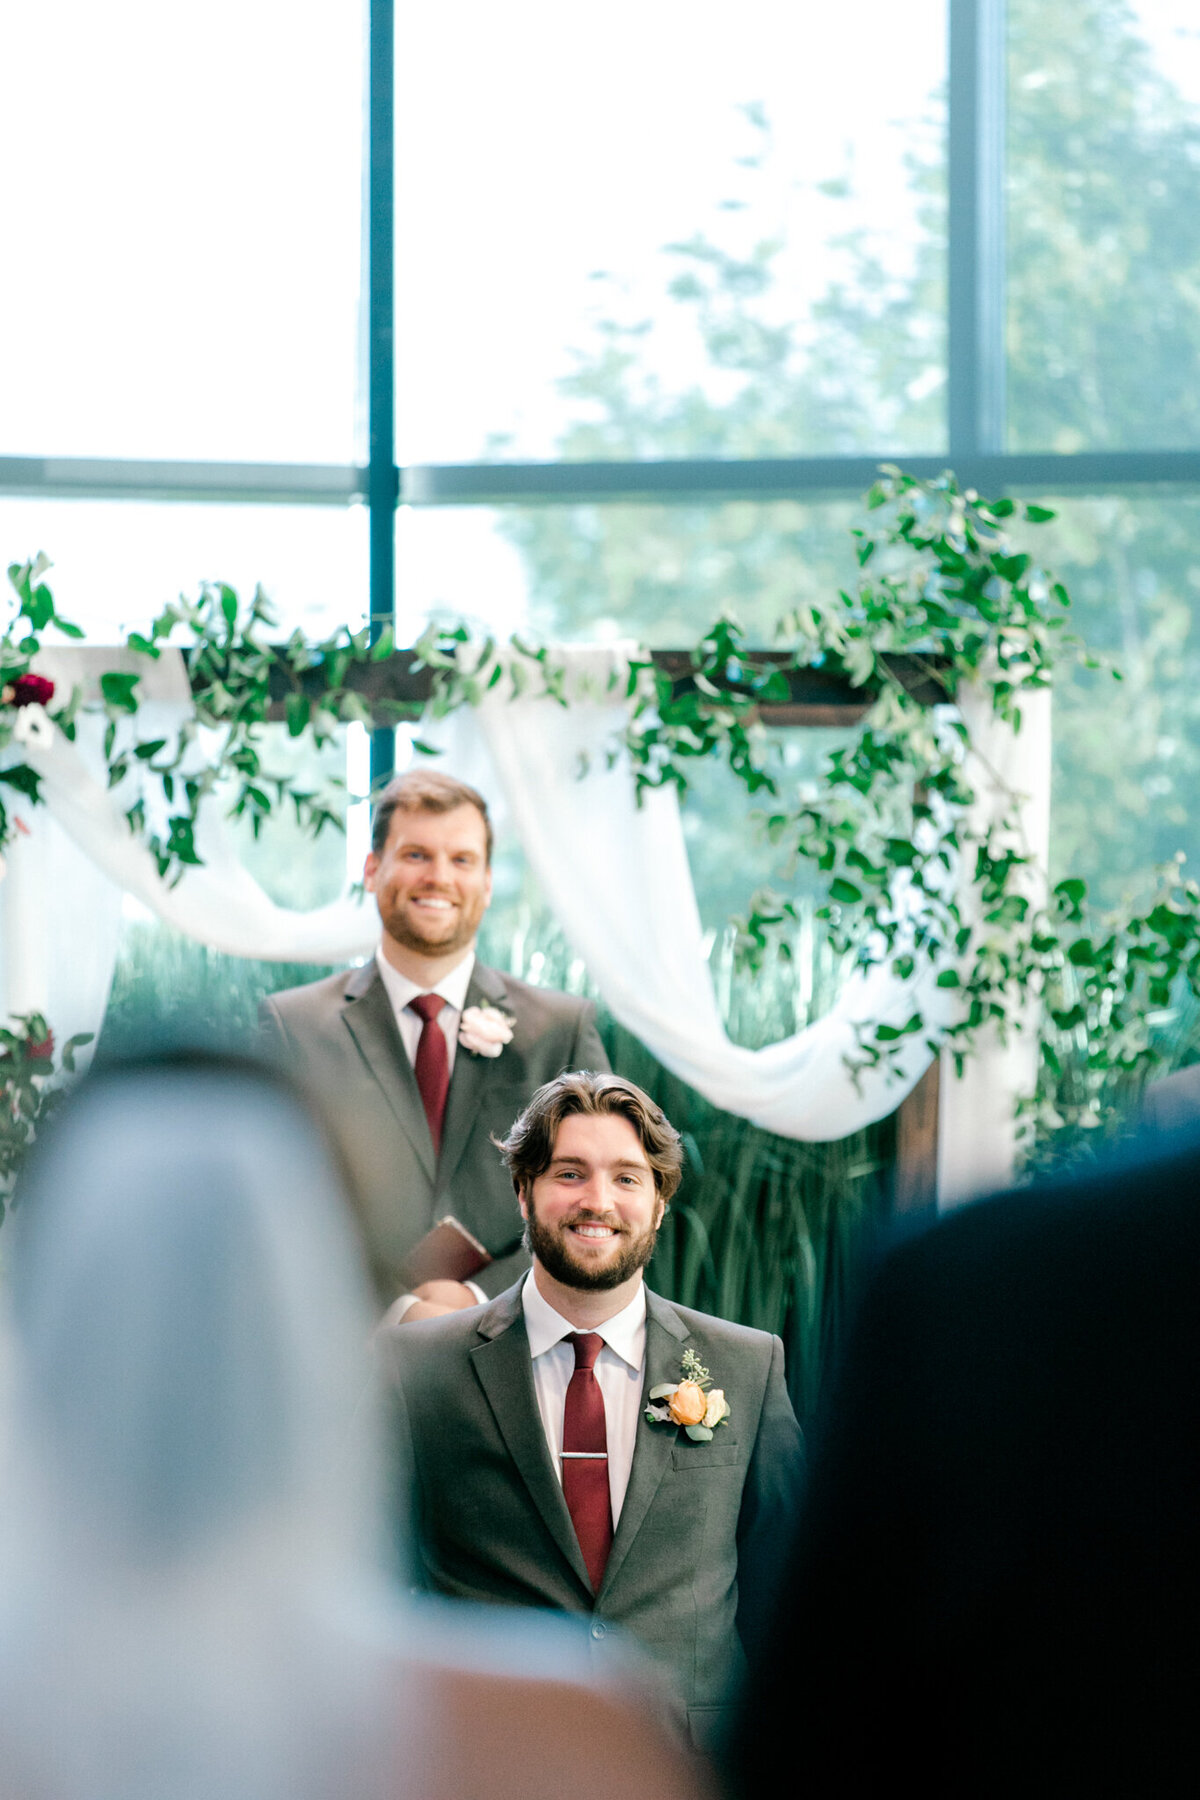 Kaylee & Michael's Wedding at Watermark Community Church | Dallas Wedding Photographer | Sami Kathryn Photography-105